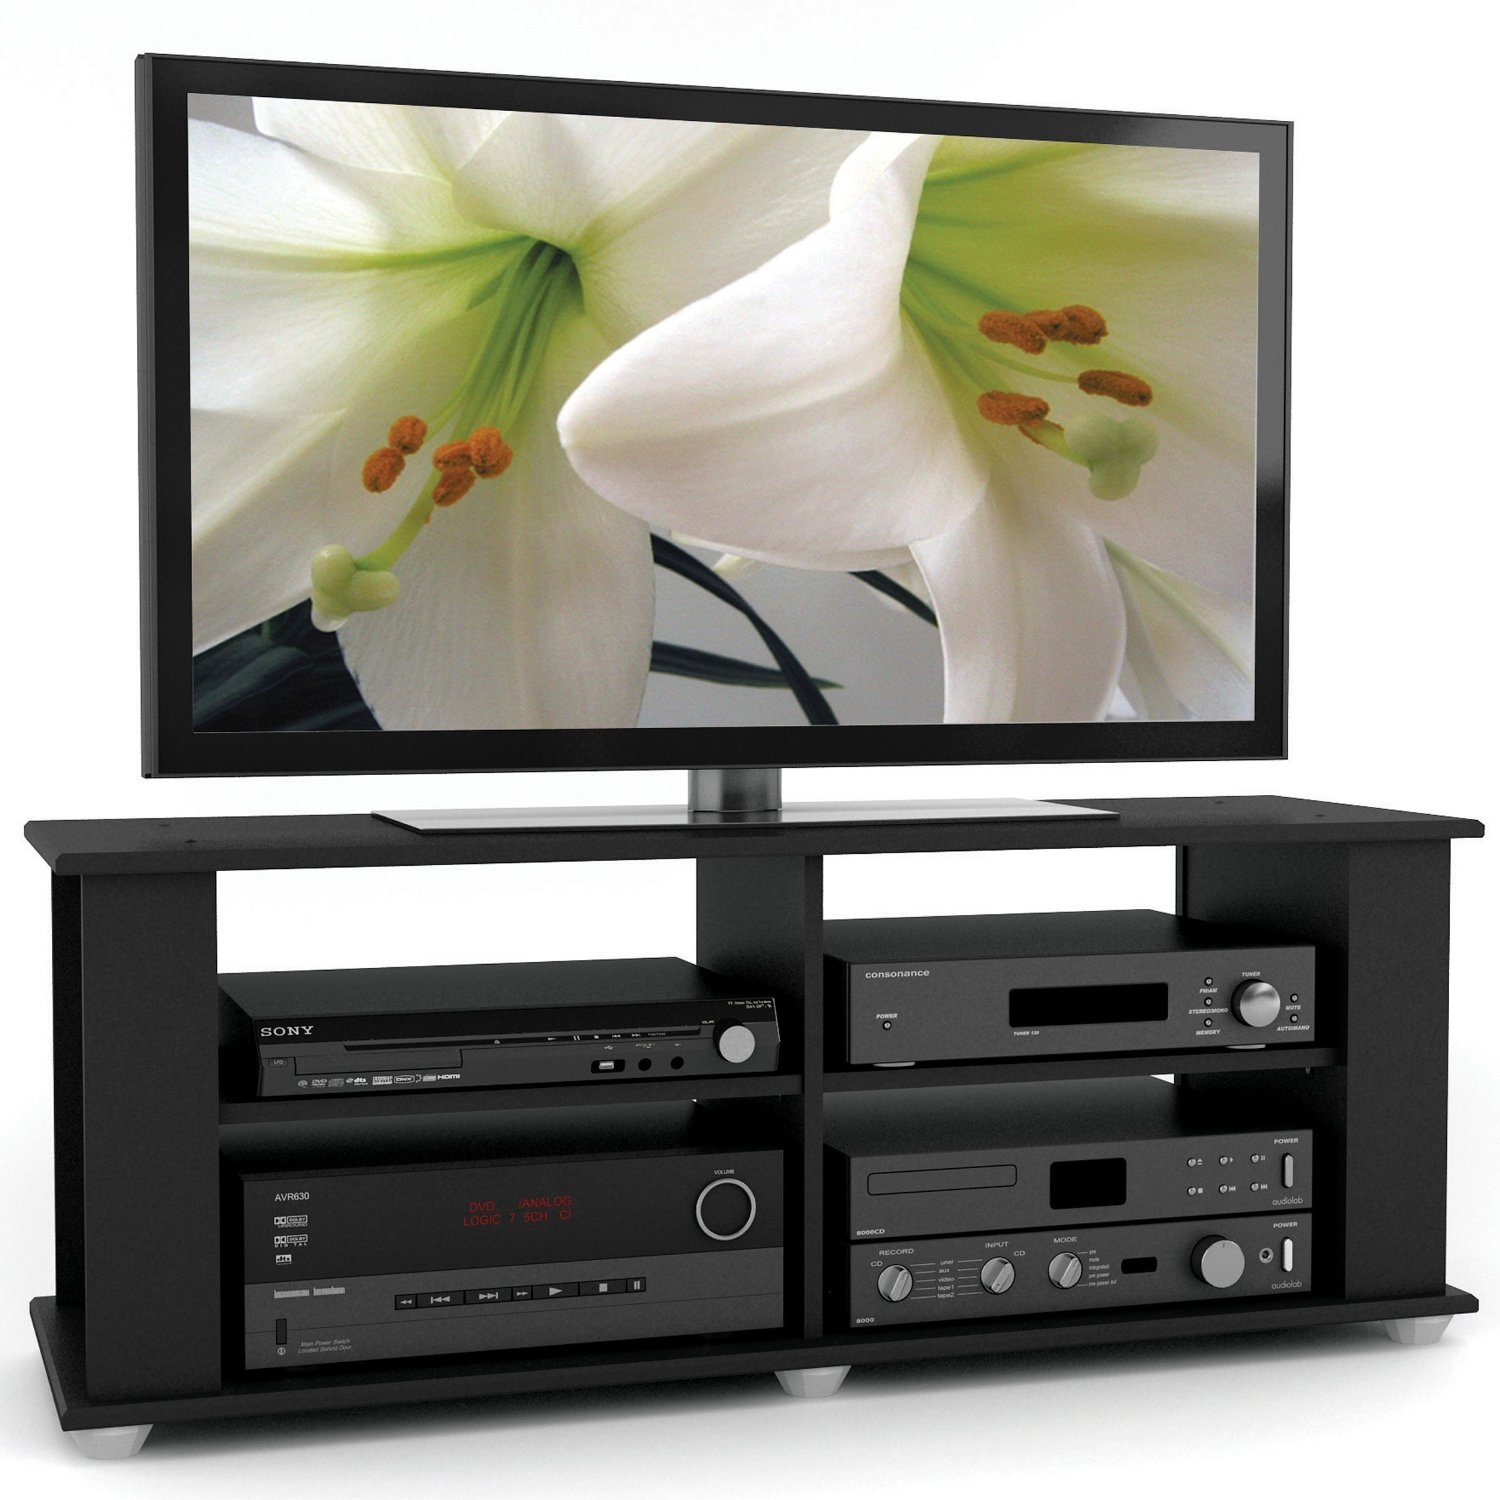 Contemporary Black TV Stand - Fits up to 54-inch TVs